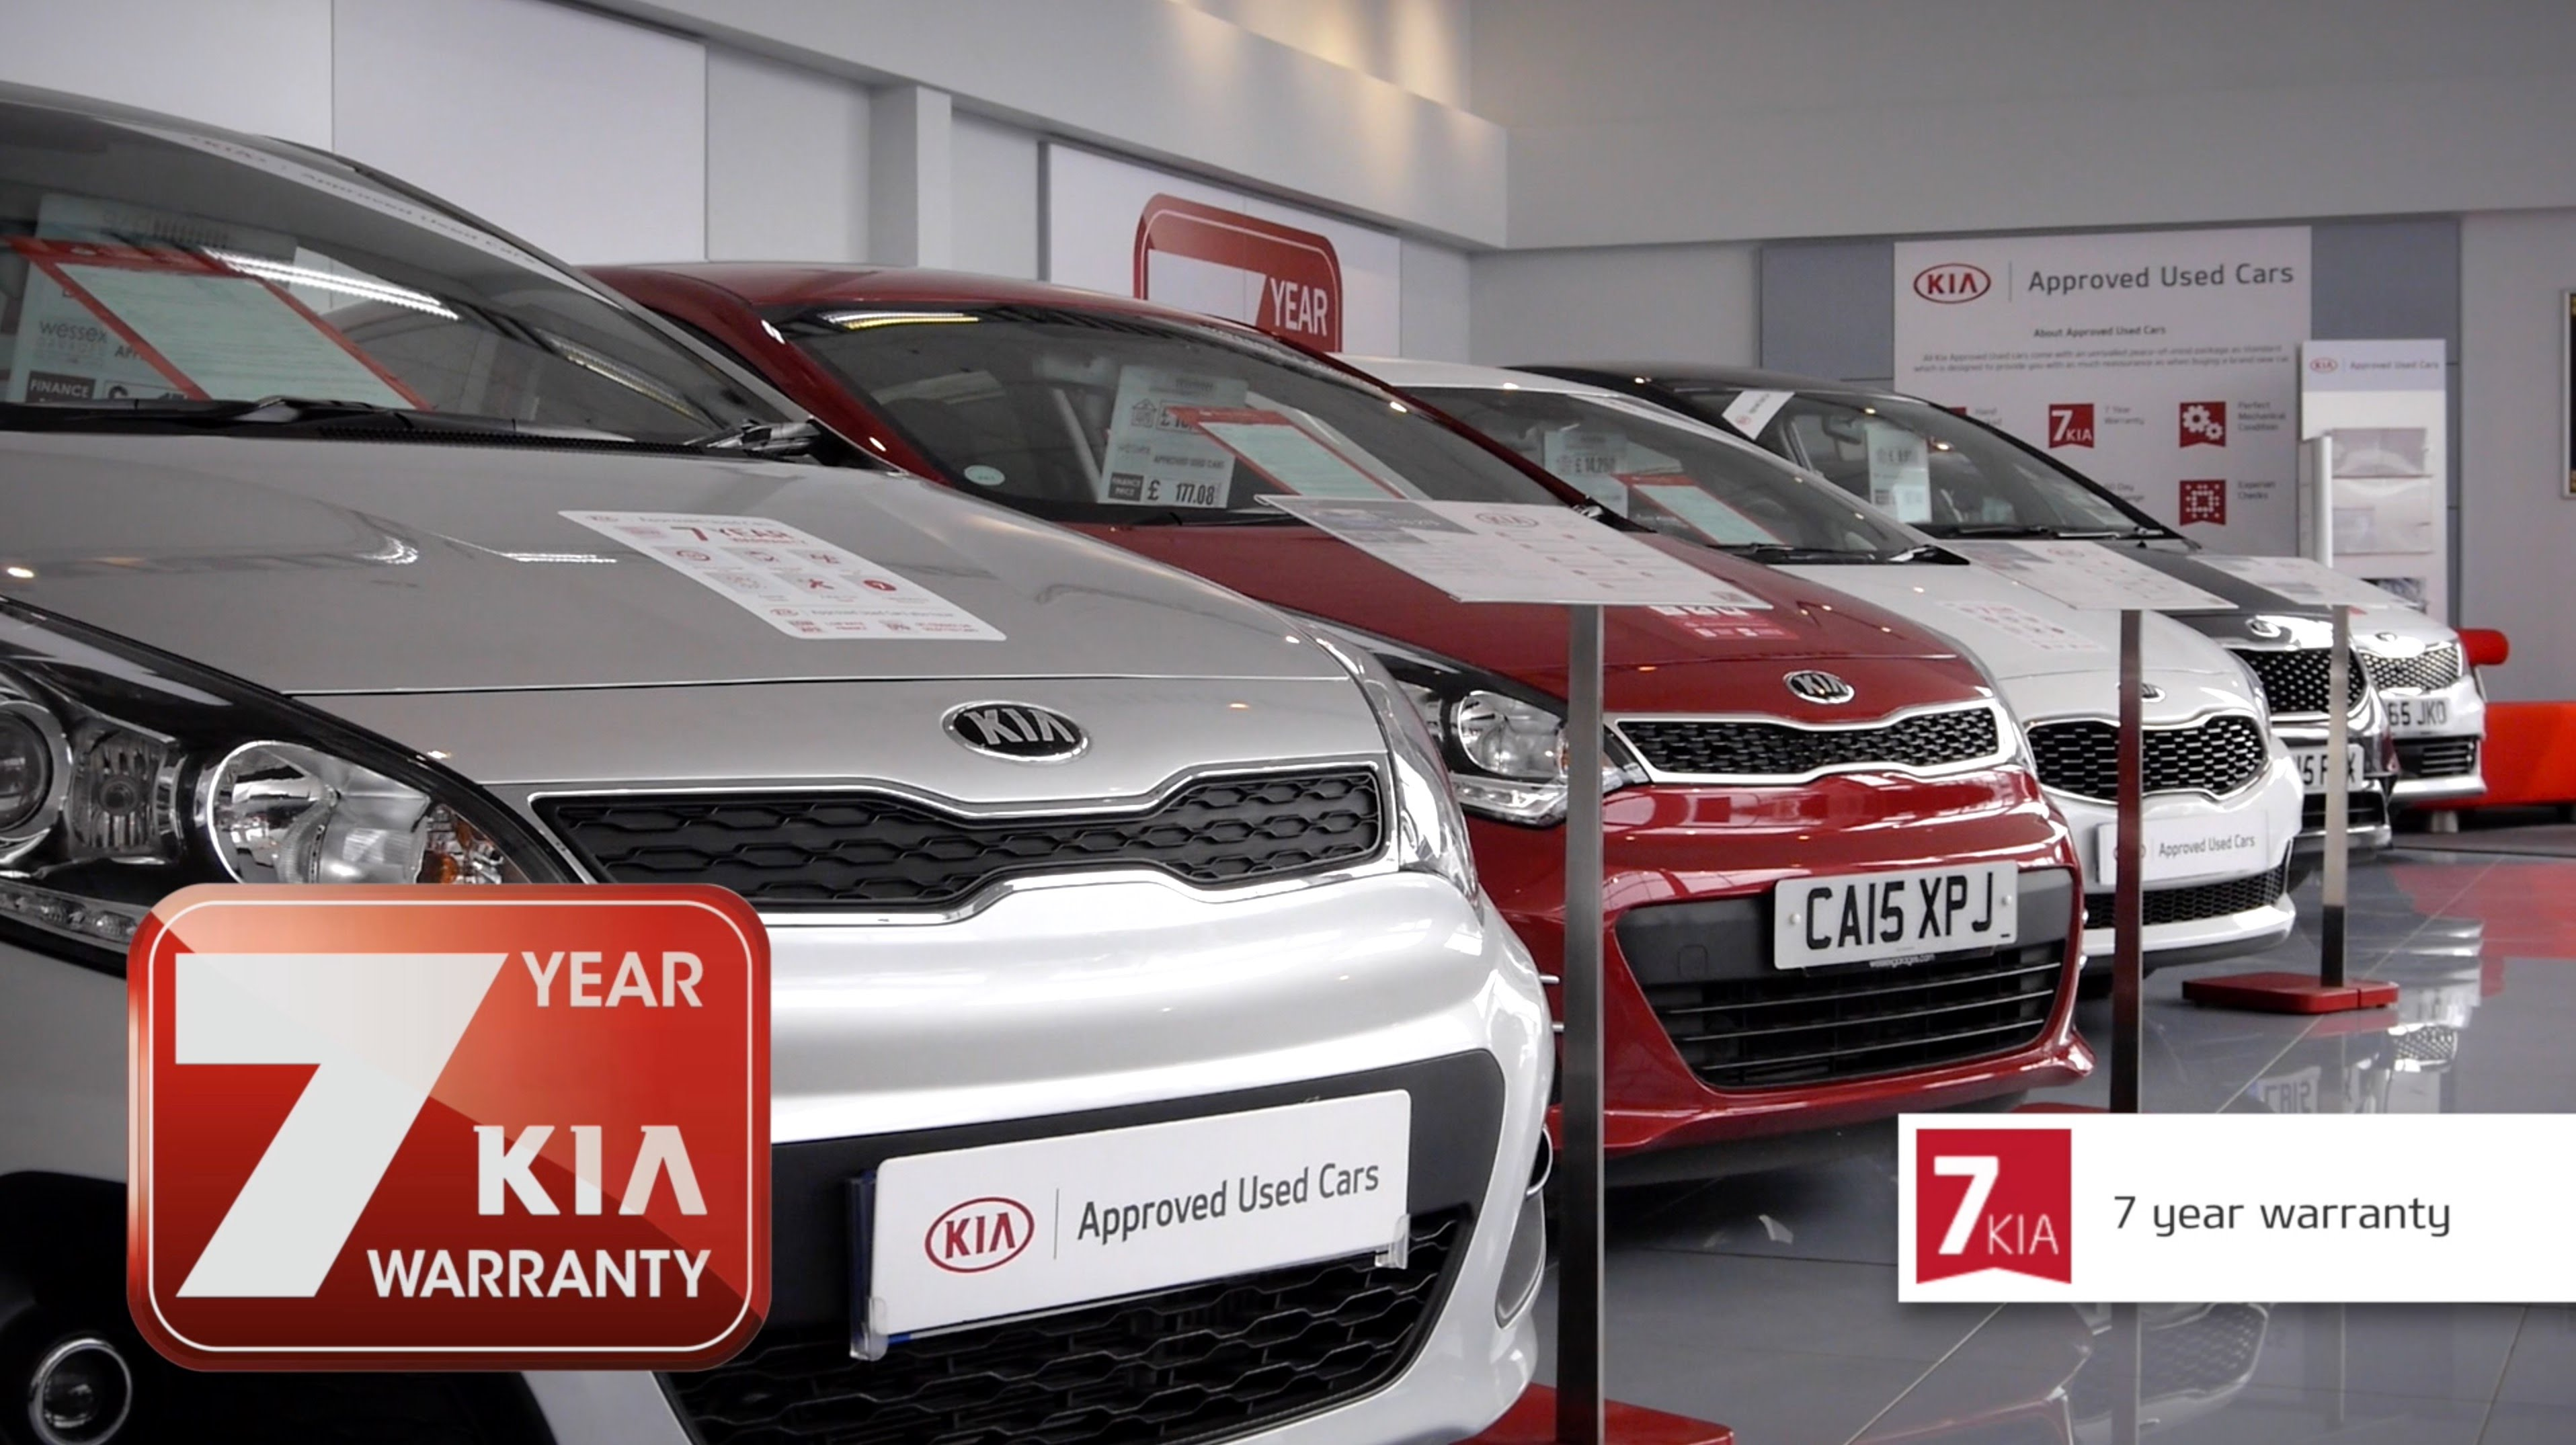 kia approved used cars the benefits